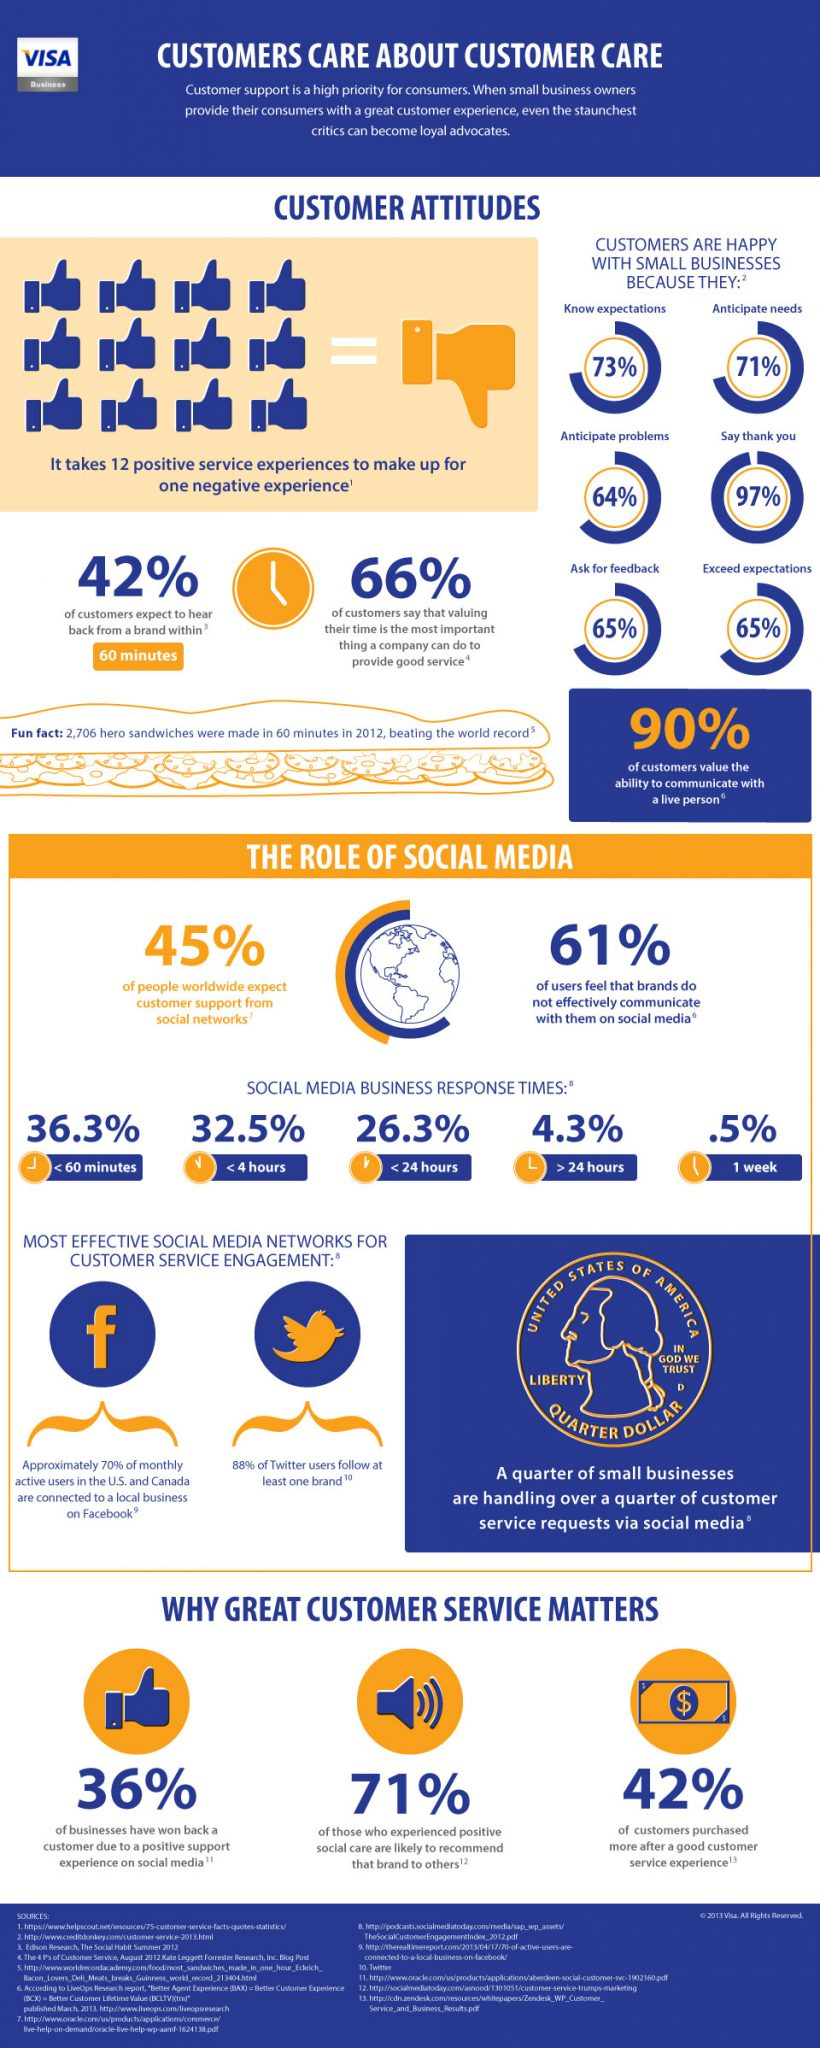 Visa Business_July Infographic_071013